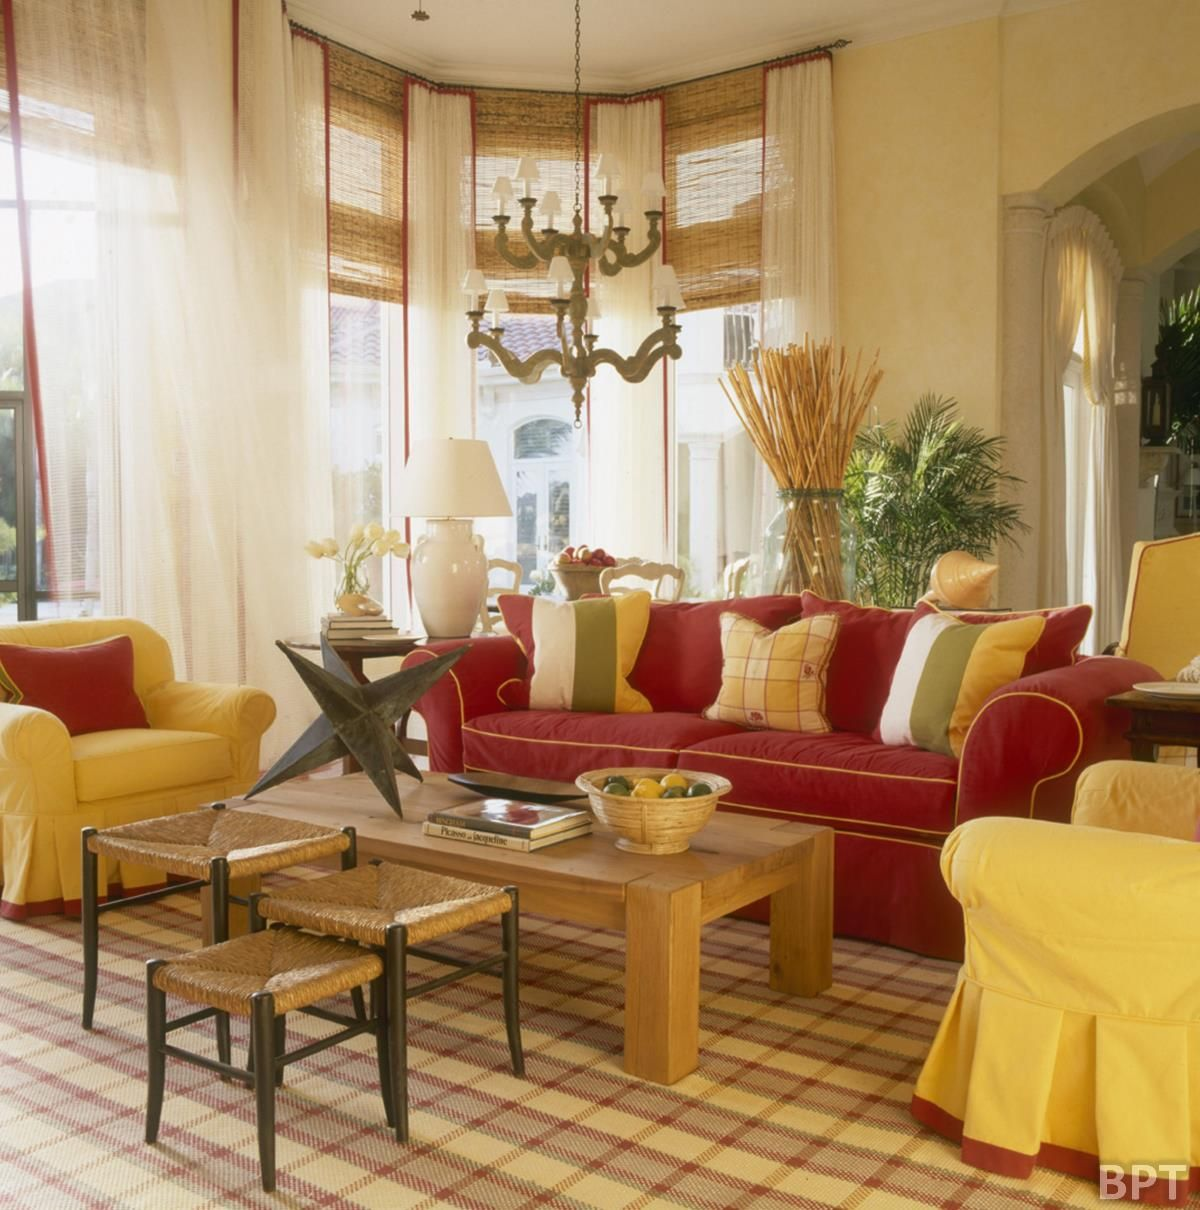 Classic interior living room design with yellow and red for Red and yellow living room ideas